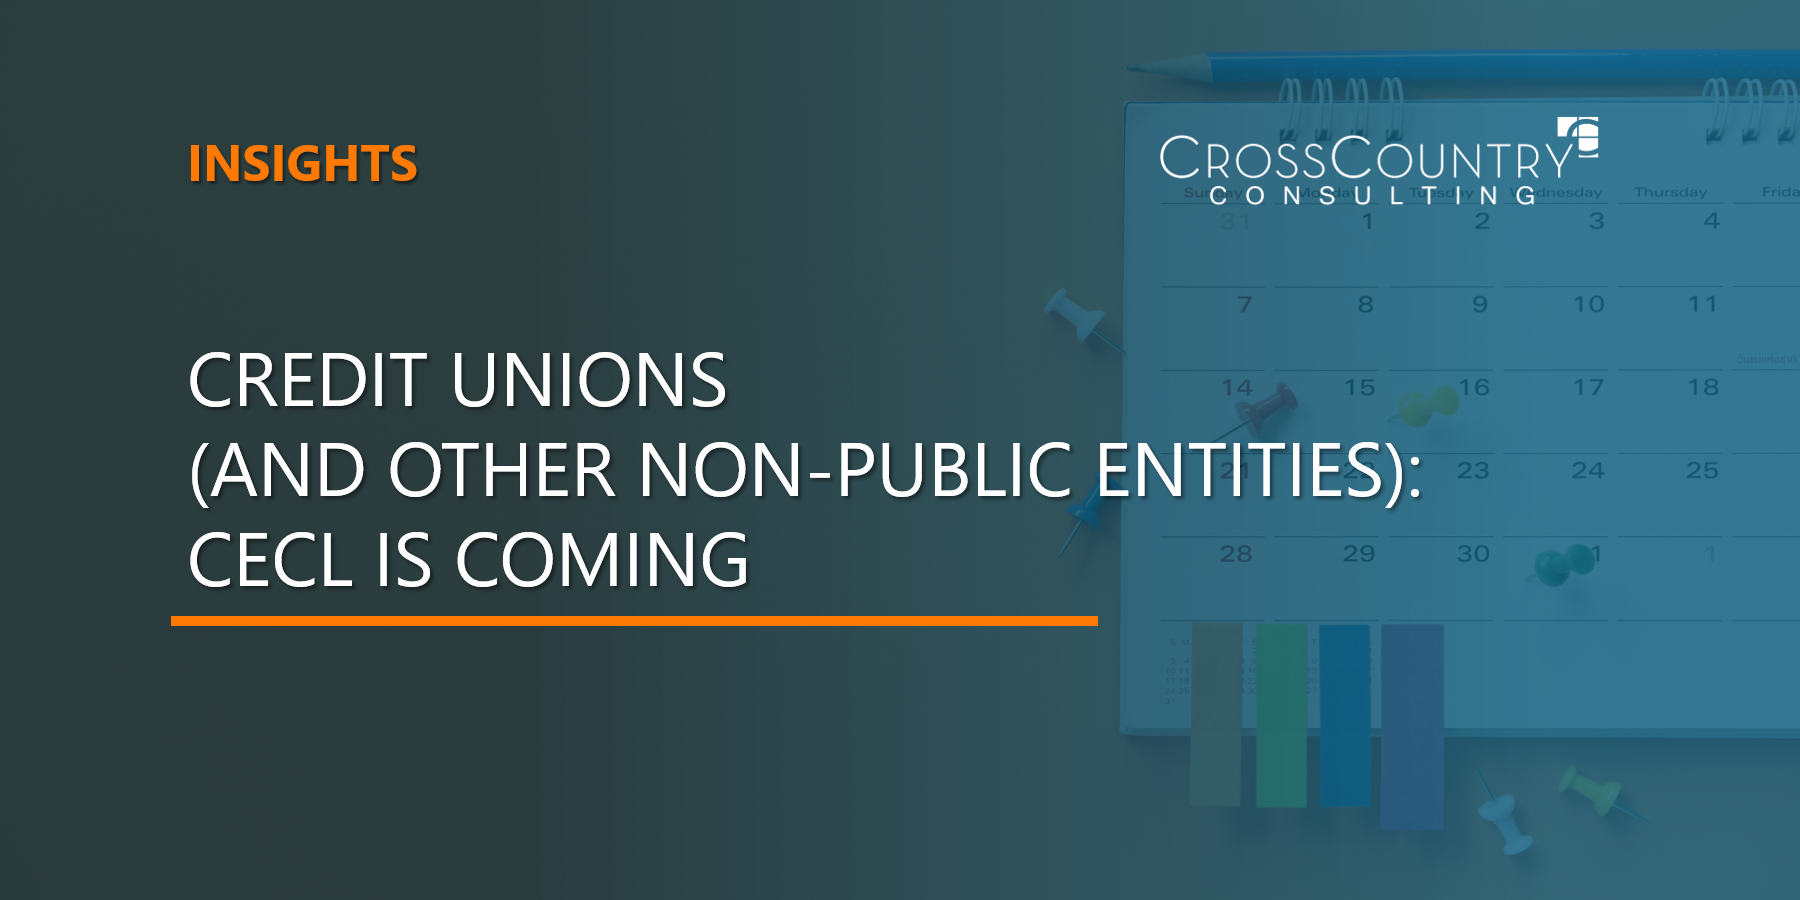 Credit Unions (and Other Non-Public Entities): CECL is Coming